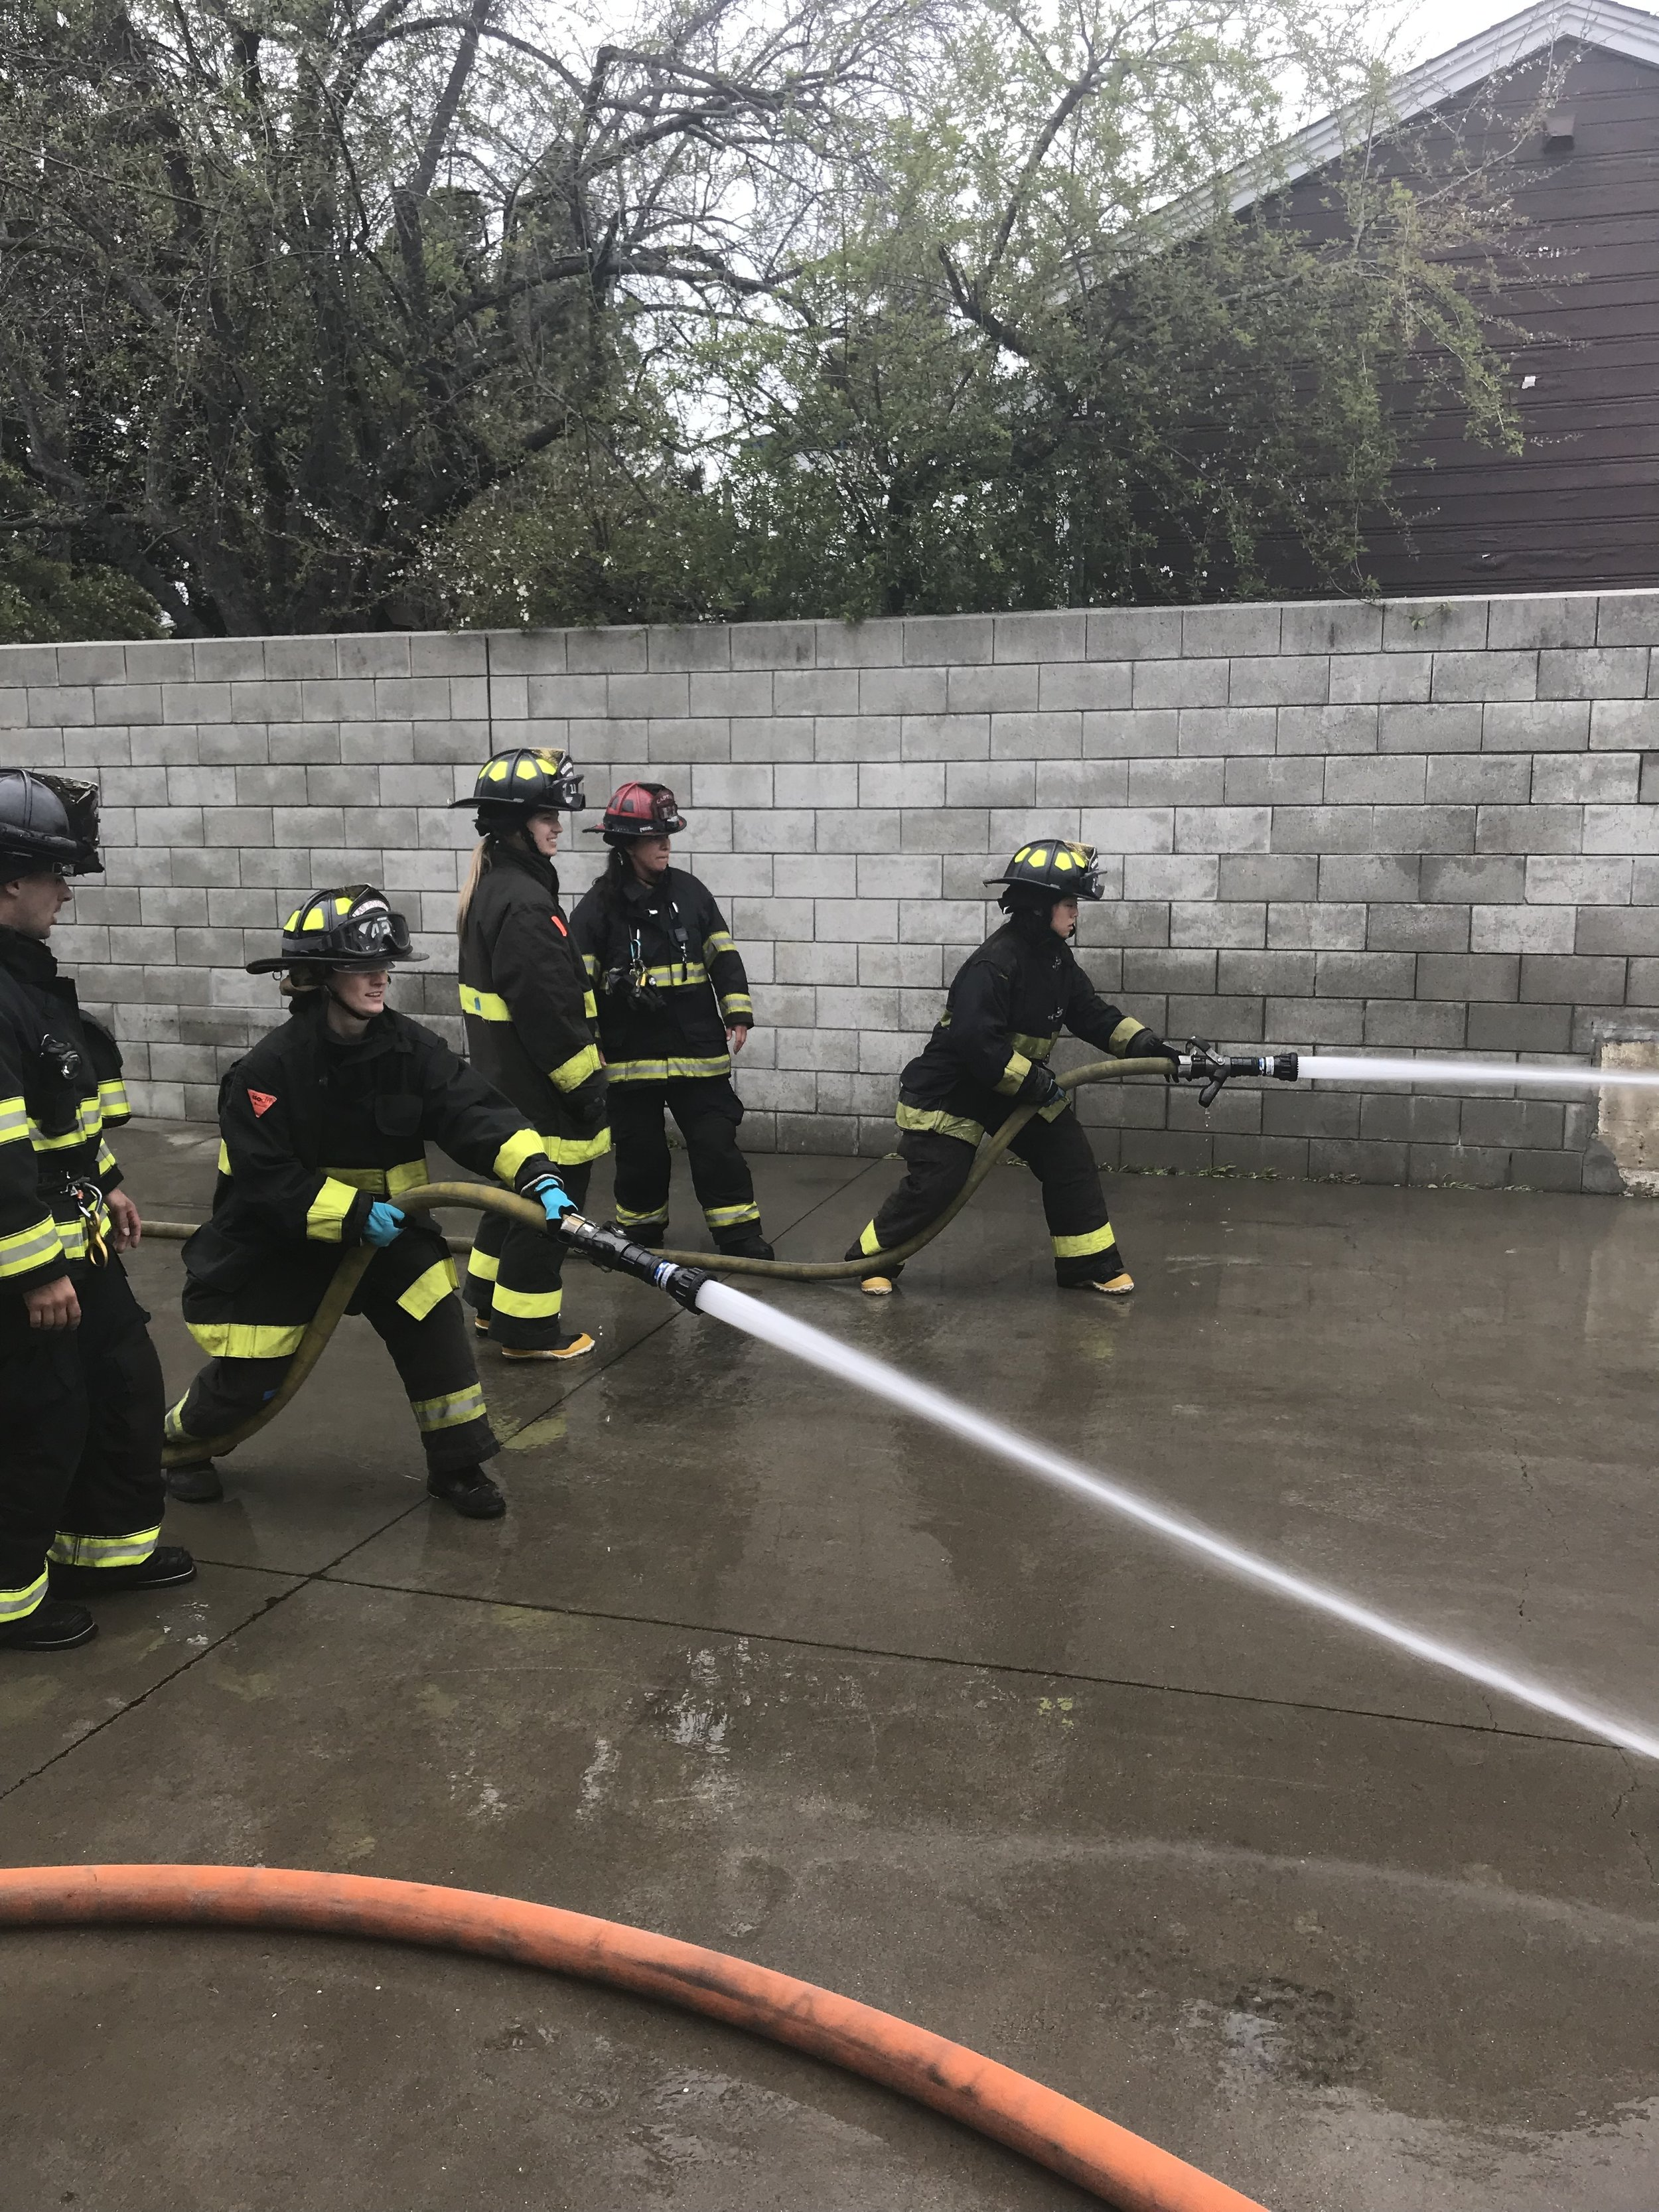 EXPERIENCE  - Students are given the opportunity to get a hands on experience and actually touch and perform hands on skills in a 2 day camp instructed by professional firefighters.